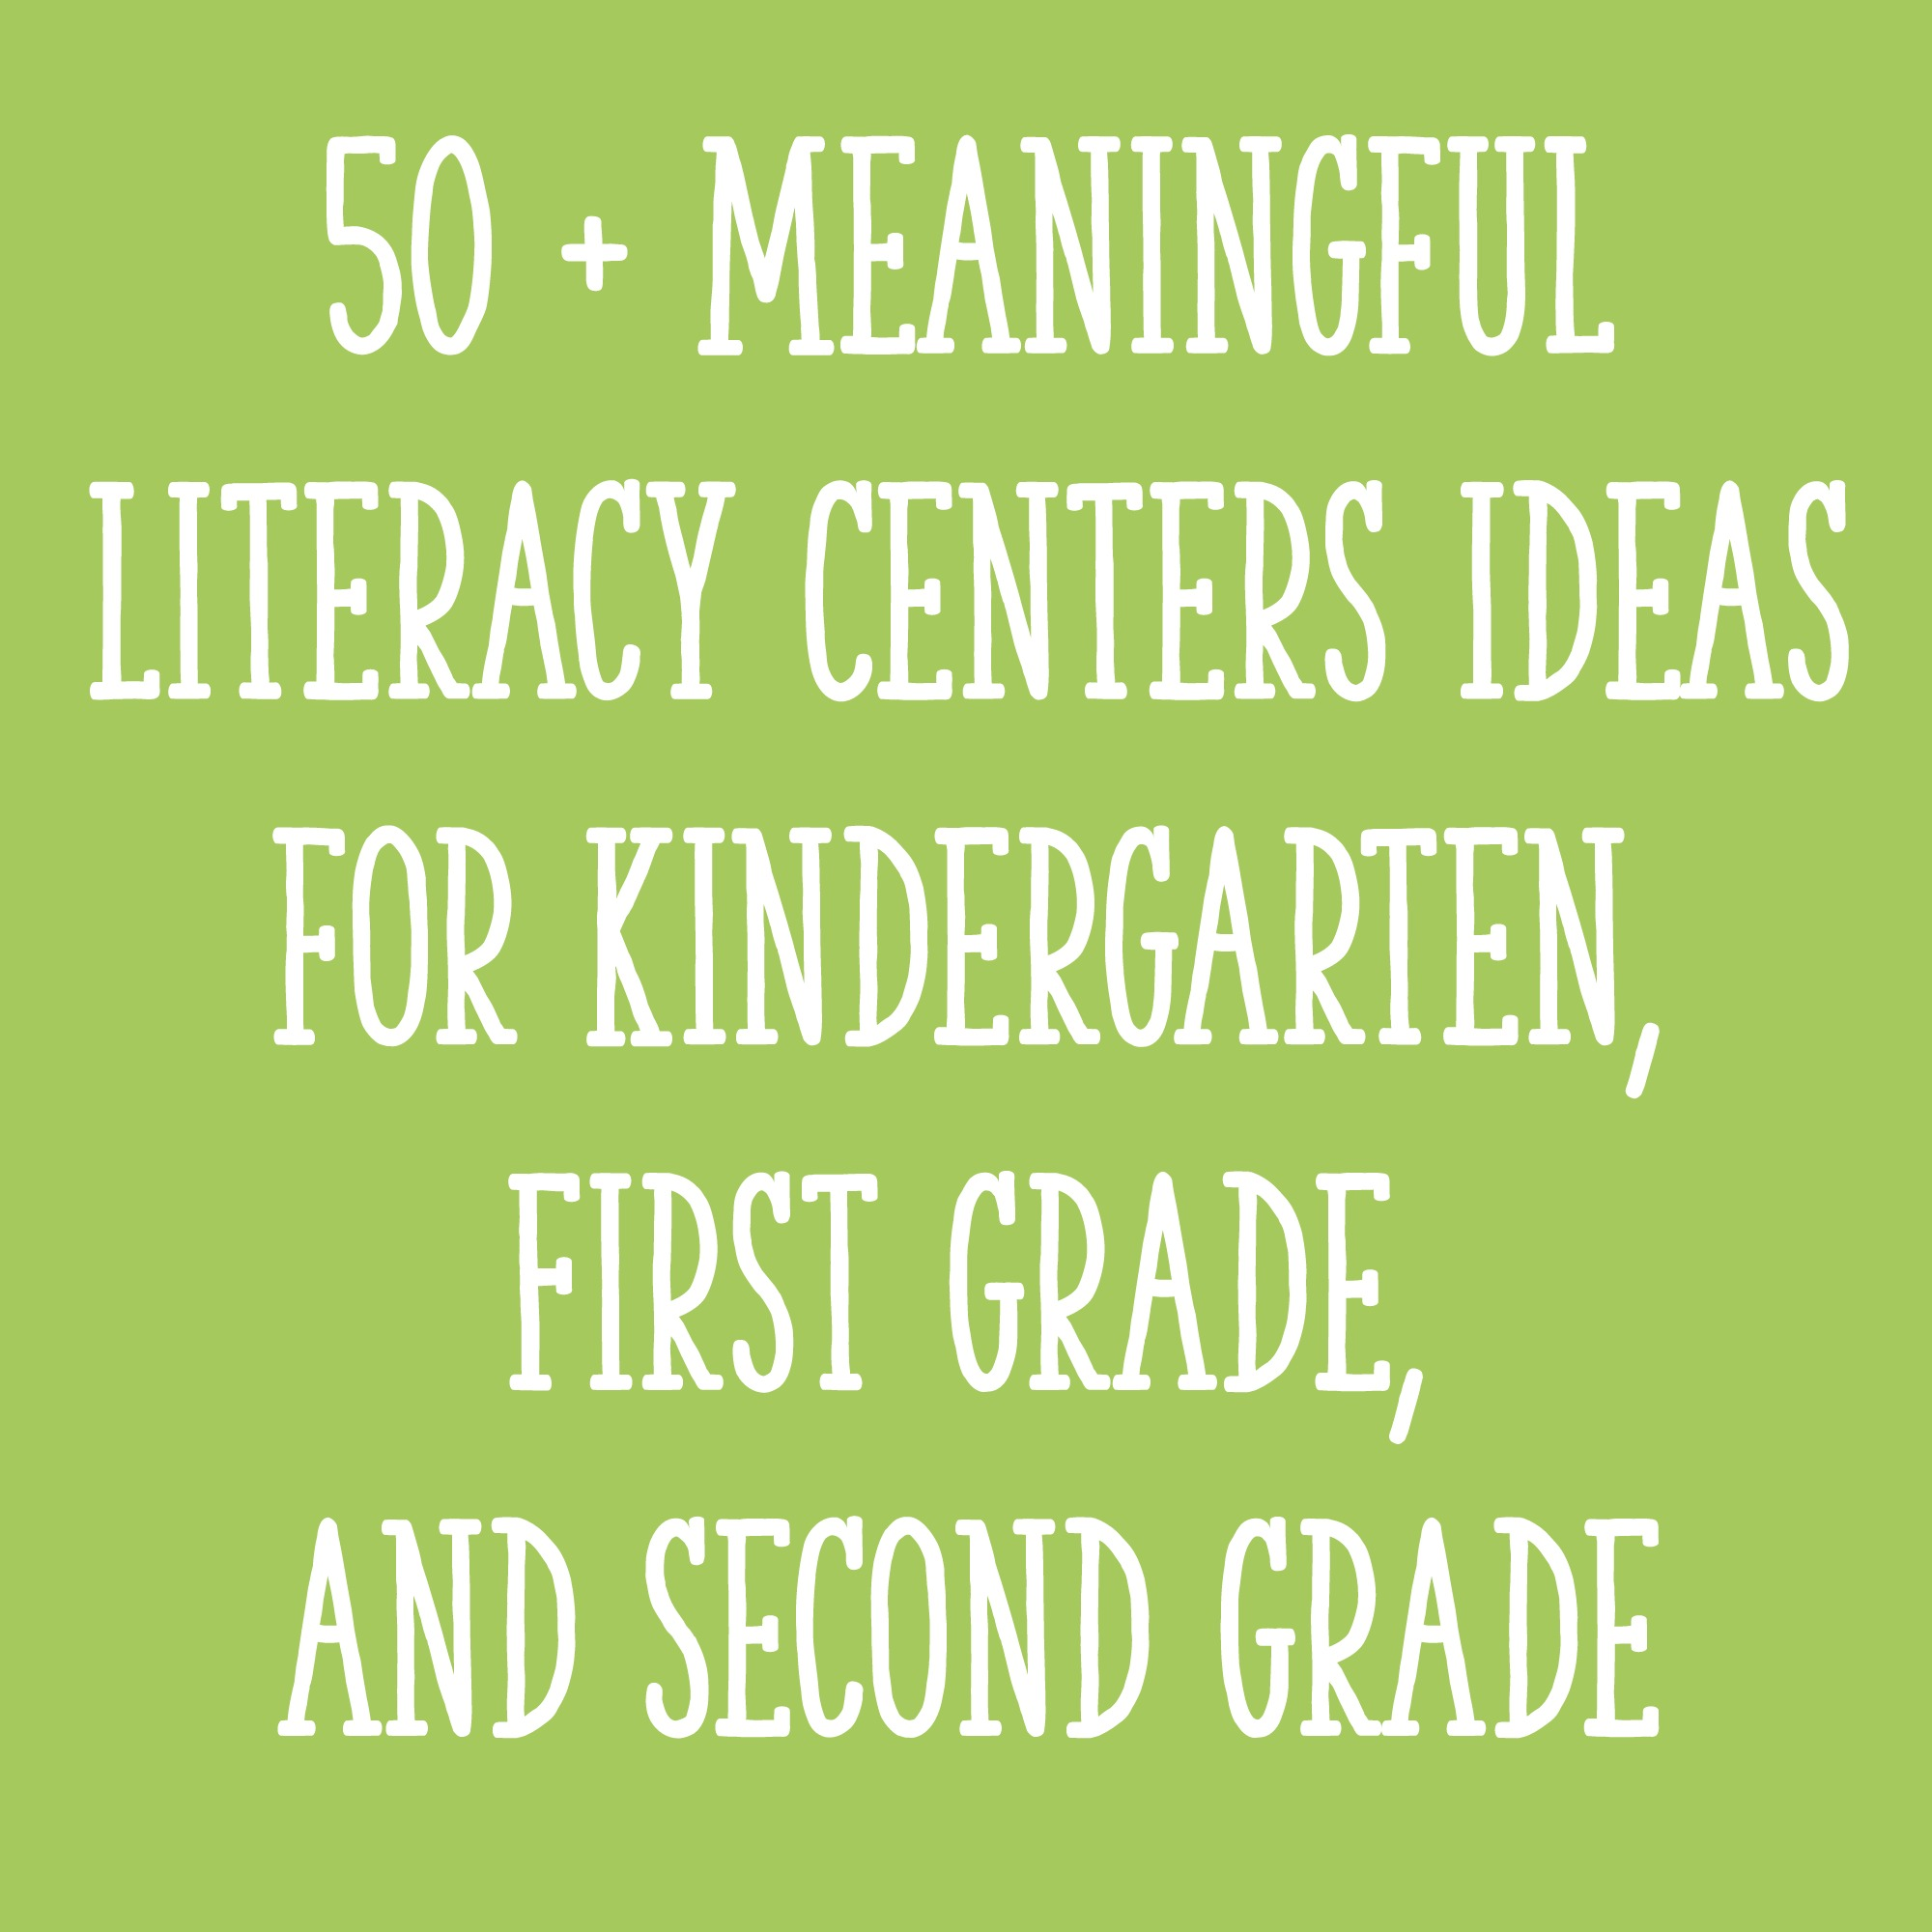 - 50 + Meaningful Literacy Centers Ideas For Kindergarten, First